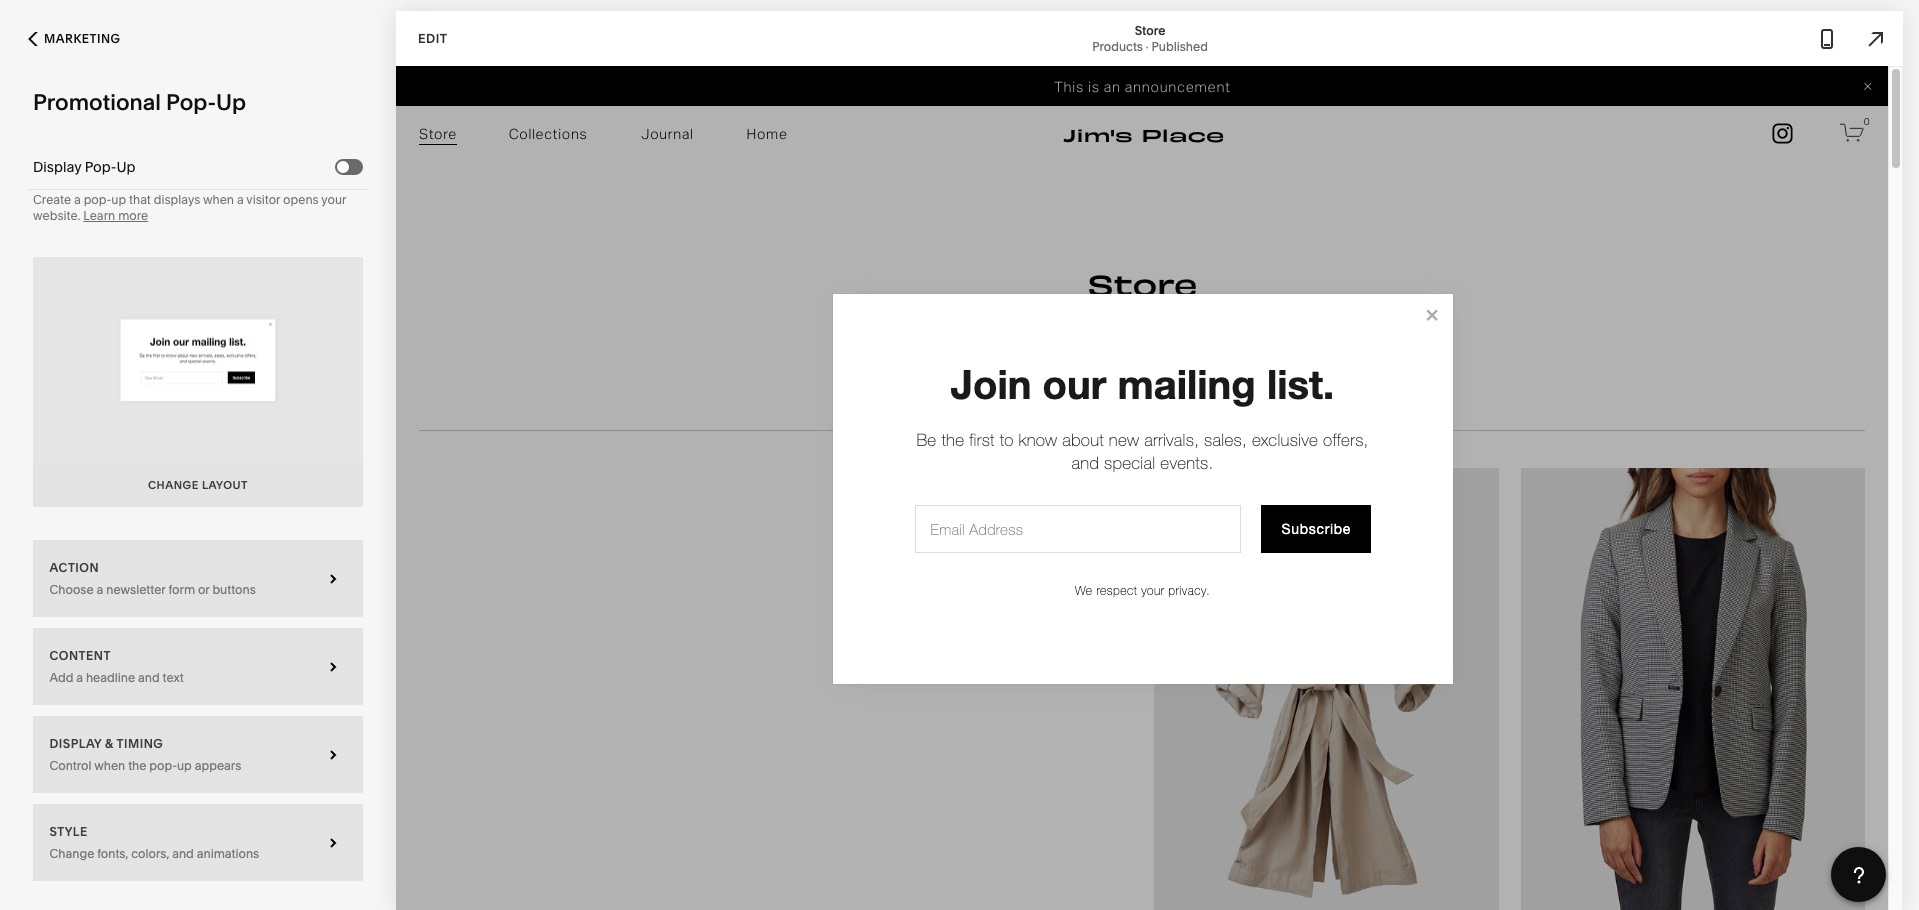 Creating popups is easy with one of our top ranked eCommerce website builders, Squarespace.